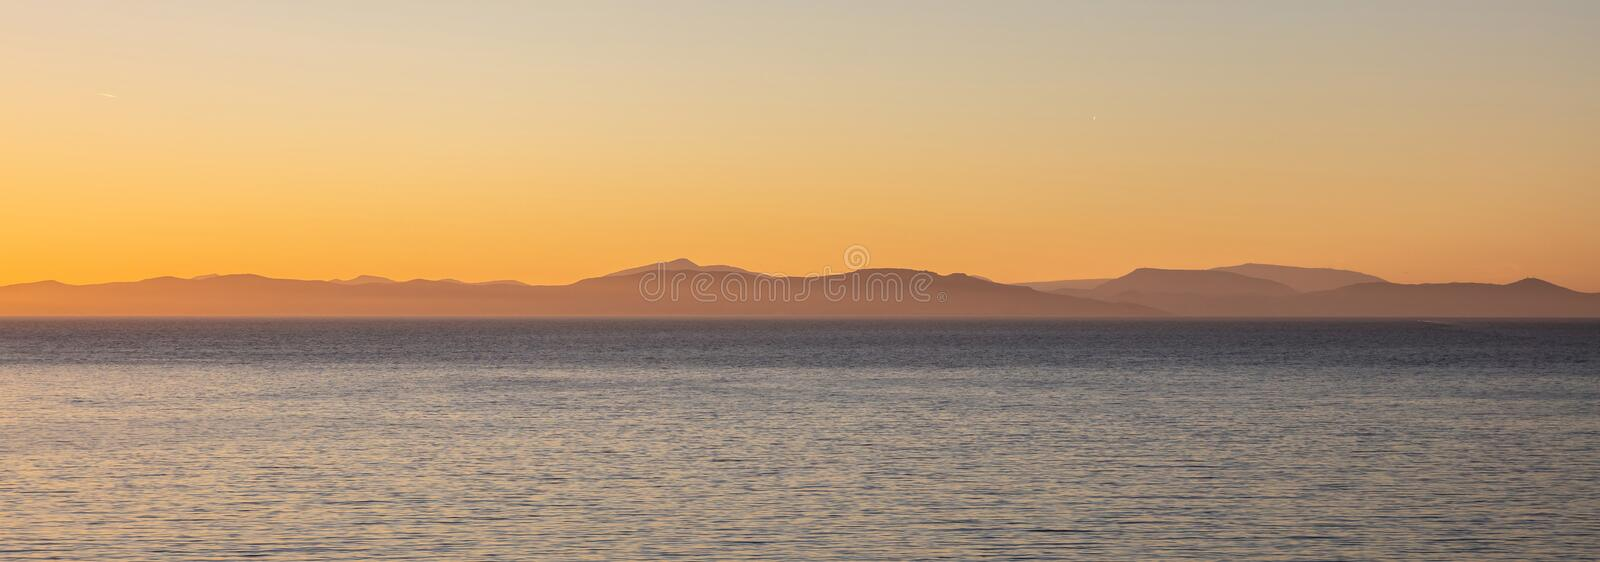 Aegean sea and Attica Greece hills, view from Kea island at sunset time, clear sky background, banner. Aegean sea and Attica Greece hills, view from Kea island royalty free stock images